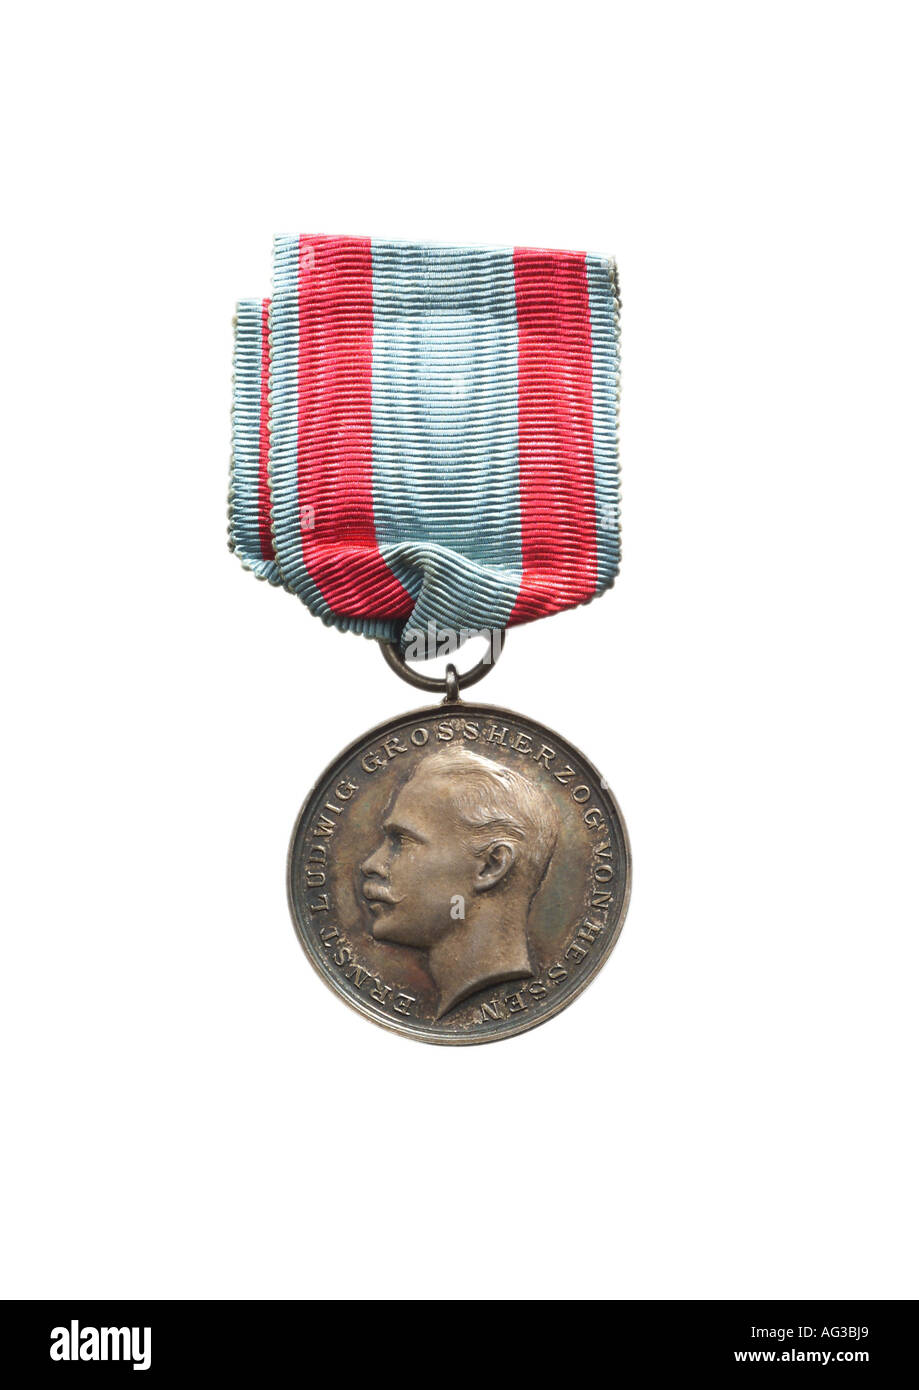 decorations, Germany, Hesse-Darmstadt, Medal for Loyal Services, 1894 - 1918, decoration, , Additional-Rights-Clearances - Stock Image